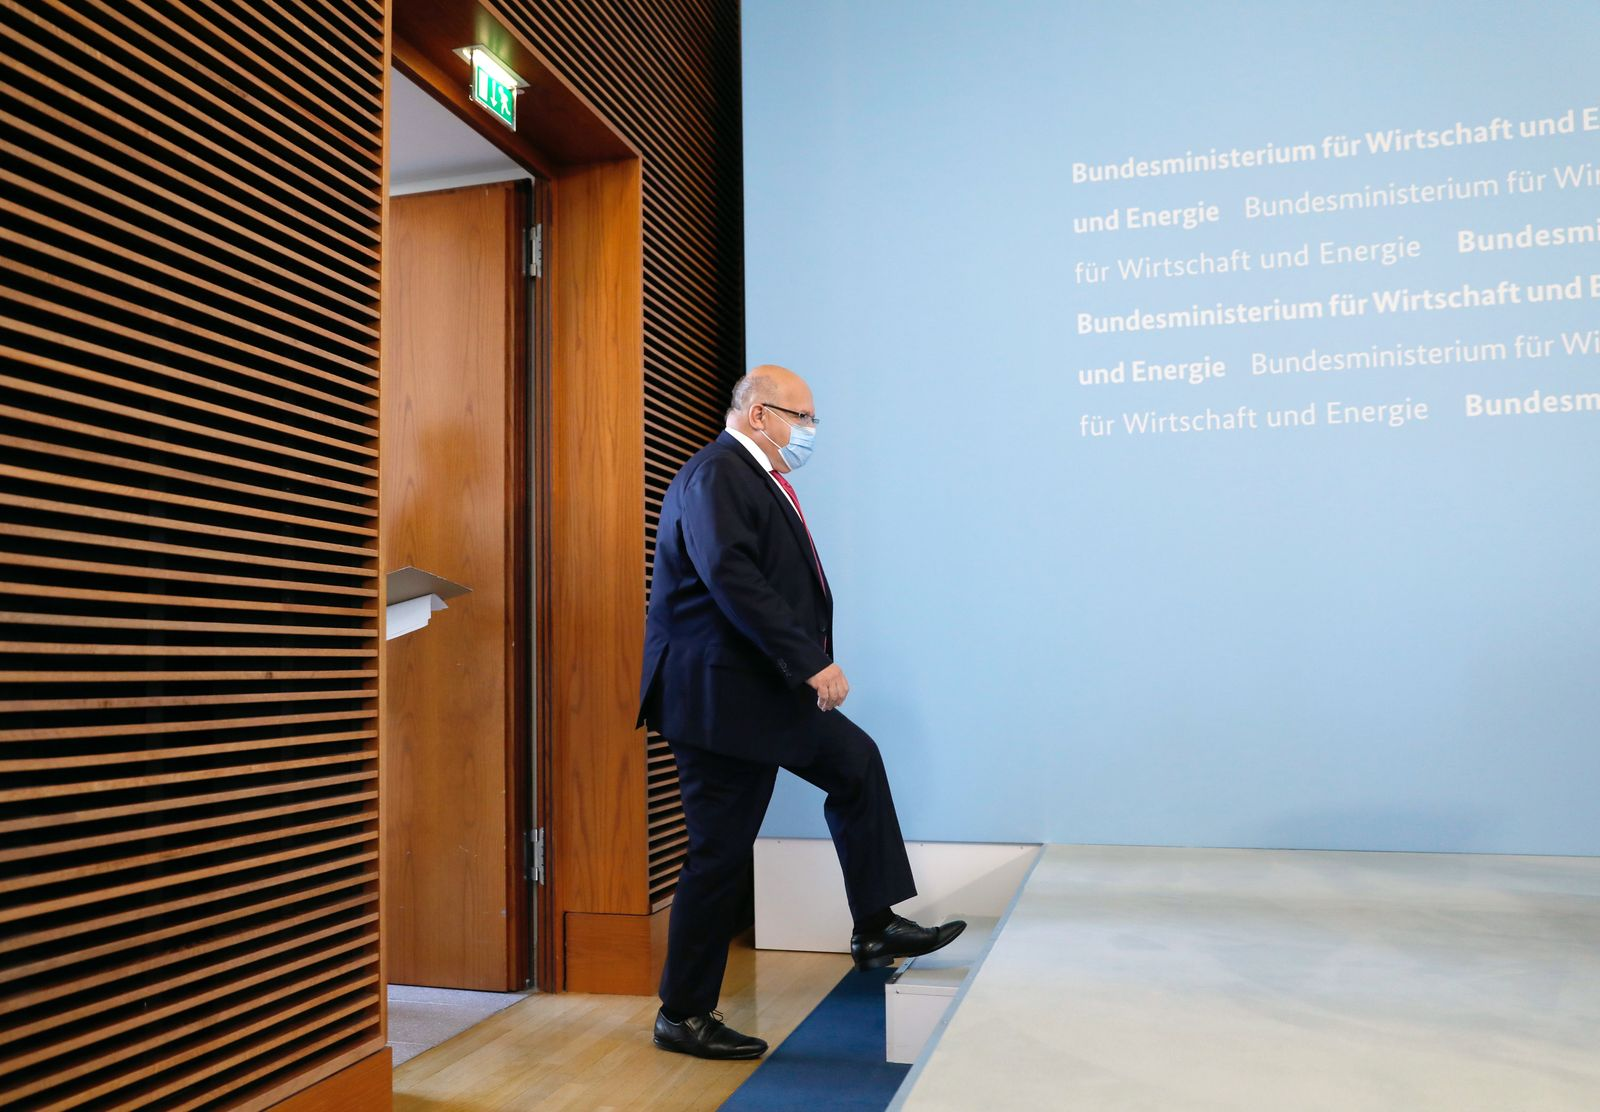 Statement Bundeswirtschaftsminister Altmaier